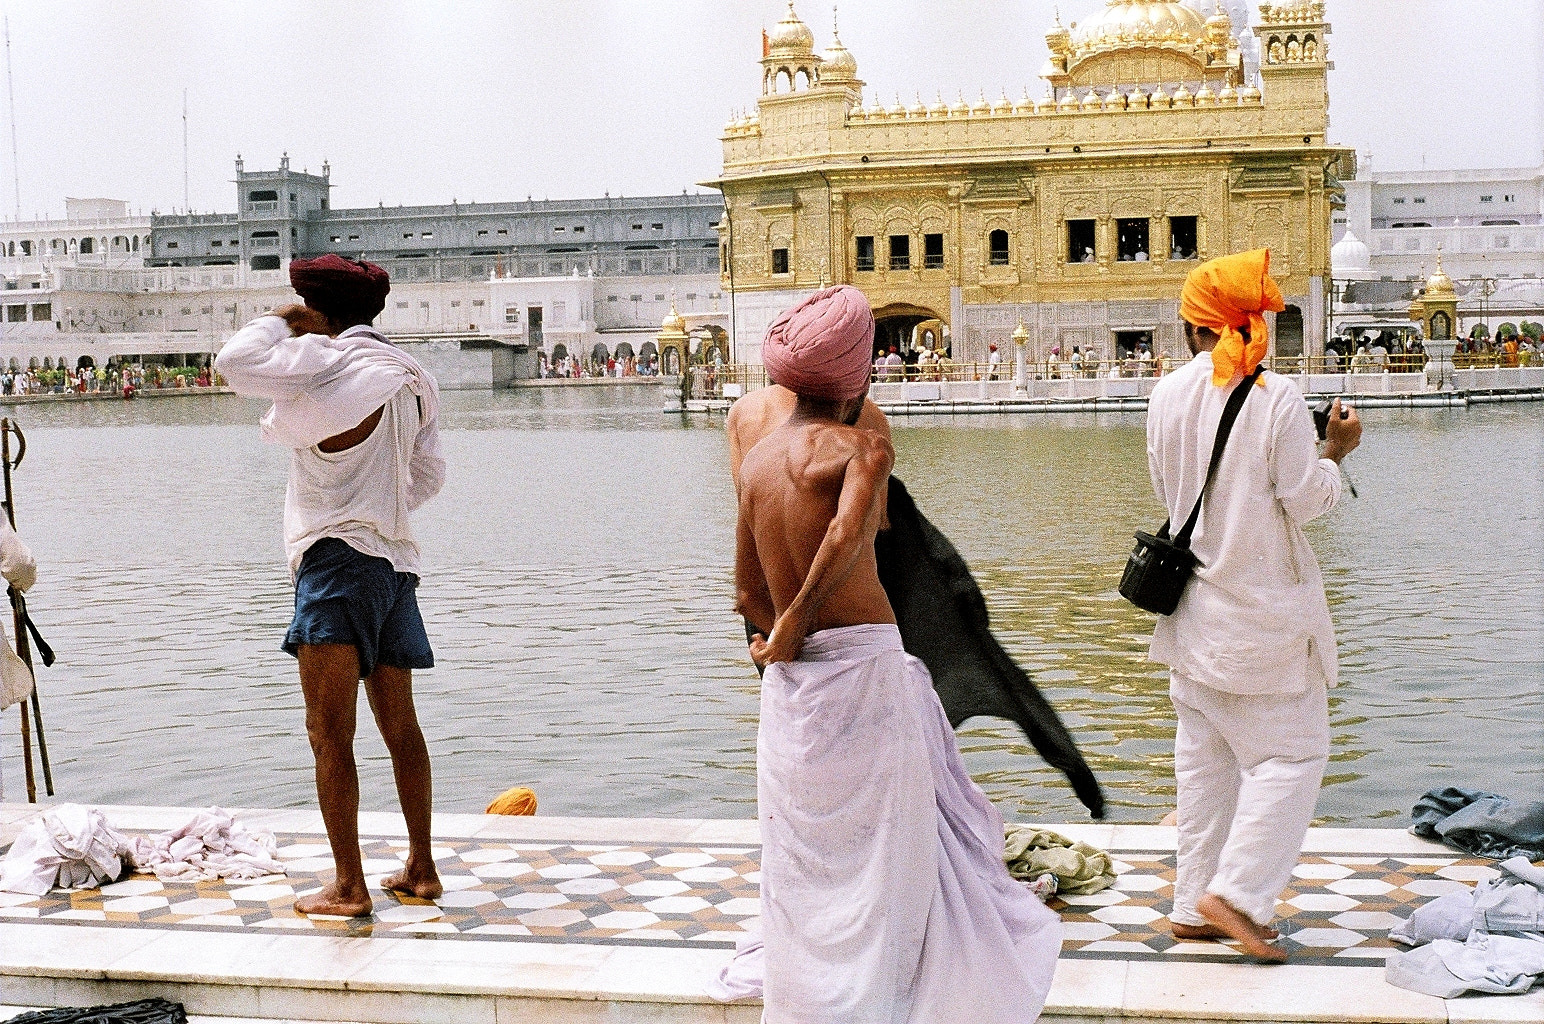 Photograph Sikh pilgrims at the most peaceful Golden Temple, Amritsar, India by Padmakar Kappagantula on 500px